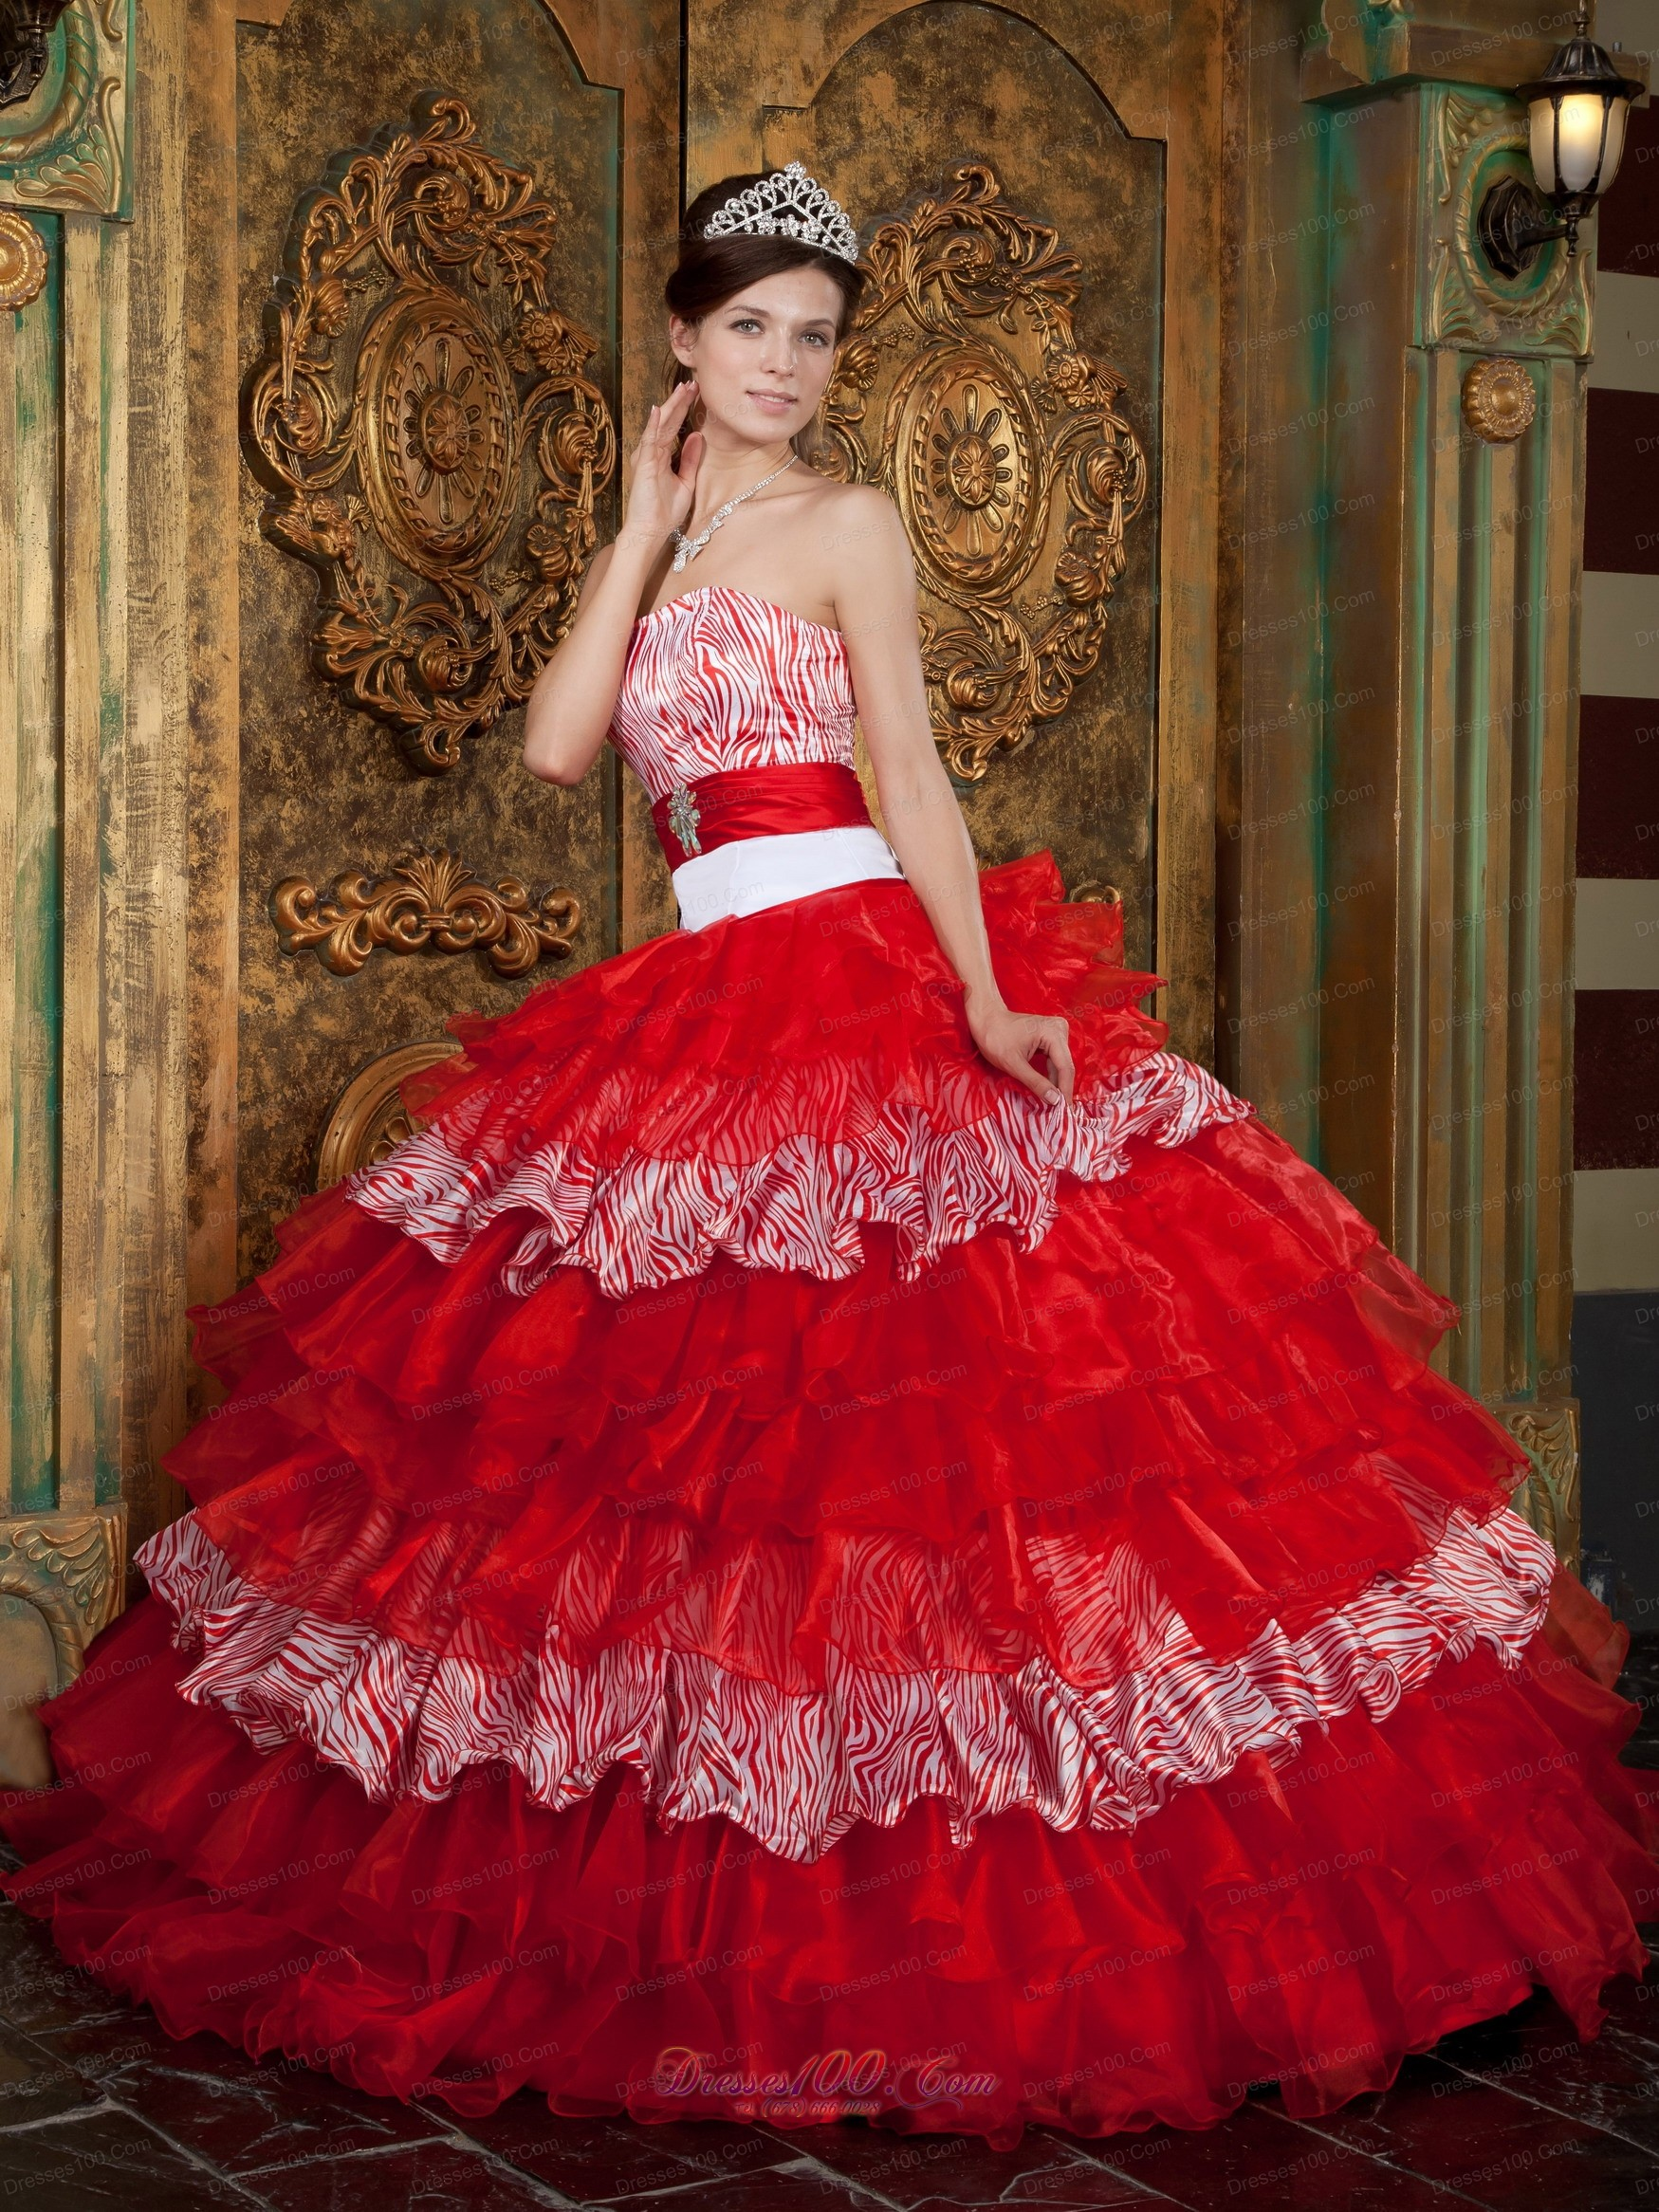 Quinceanera Dresses, Red and Zebra Print Ball Gown Quinceanera Dress